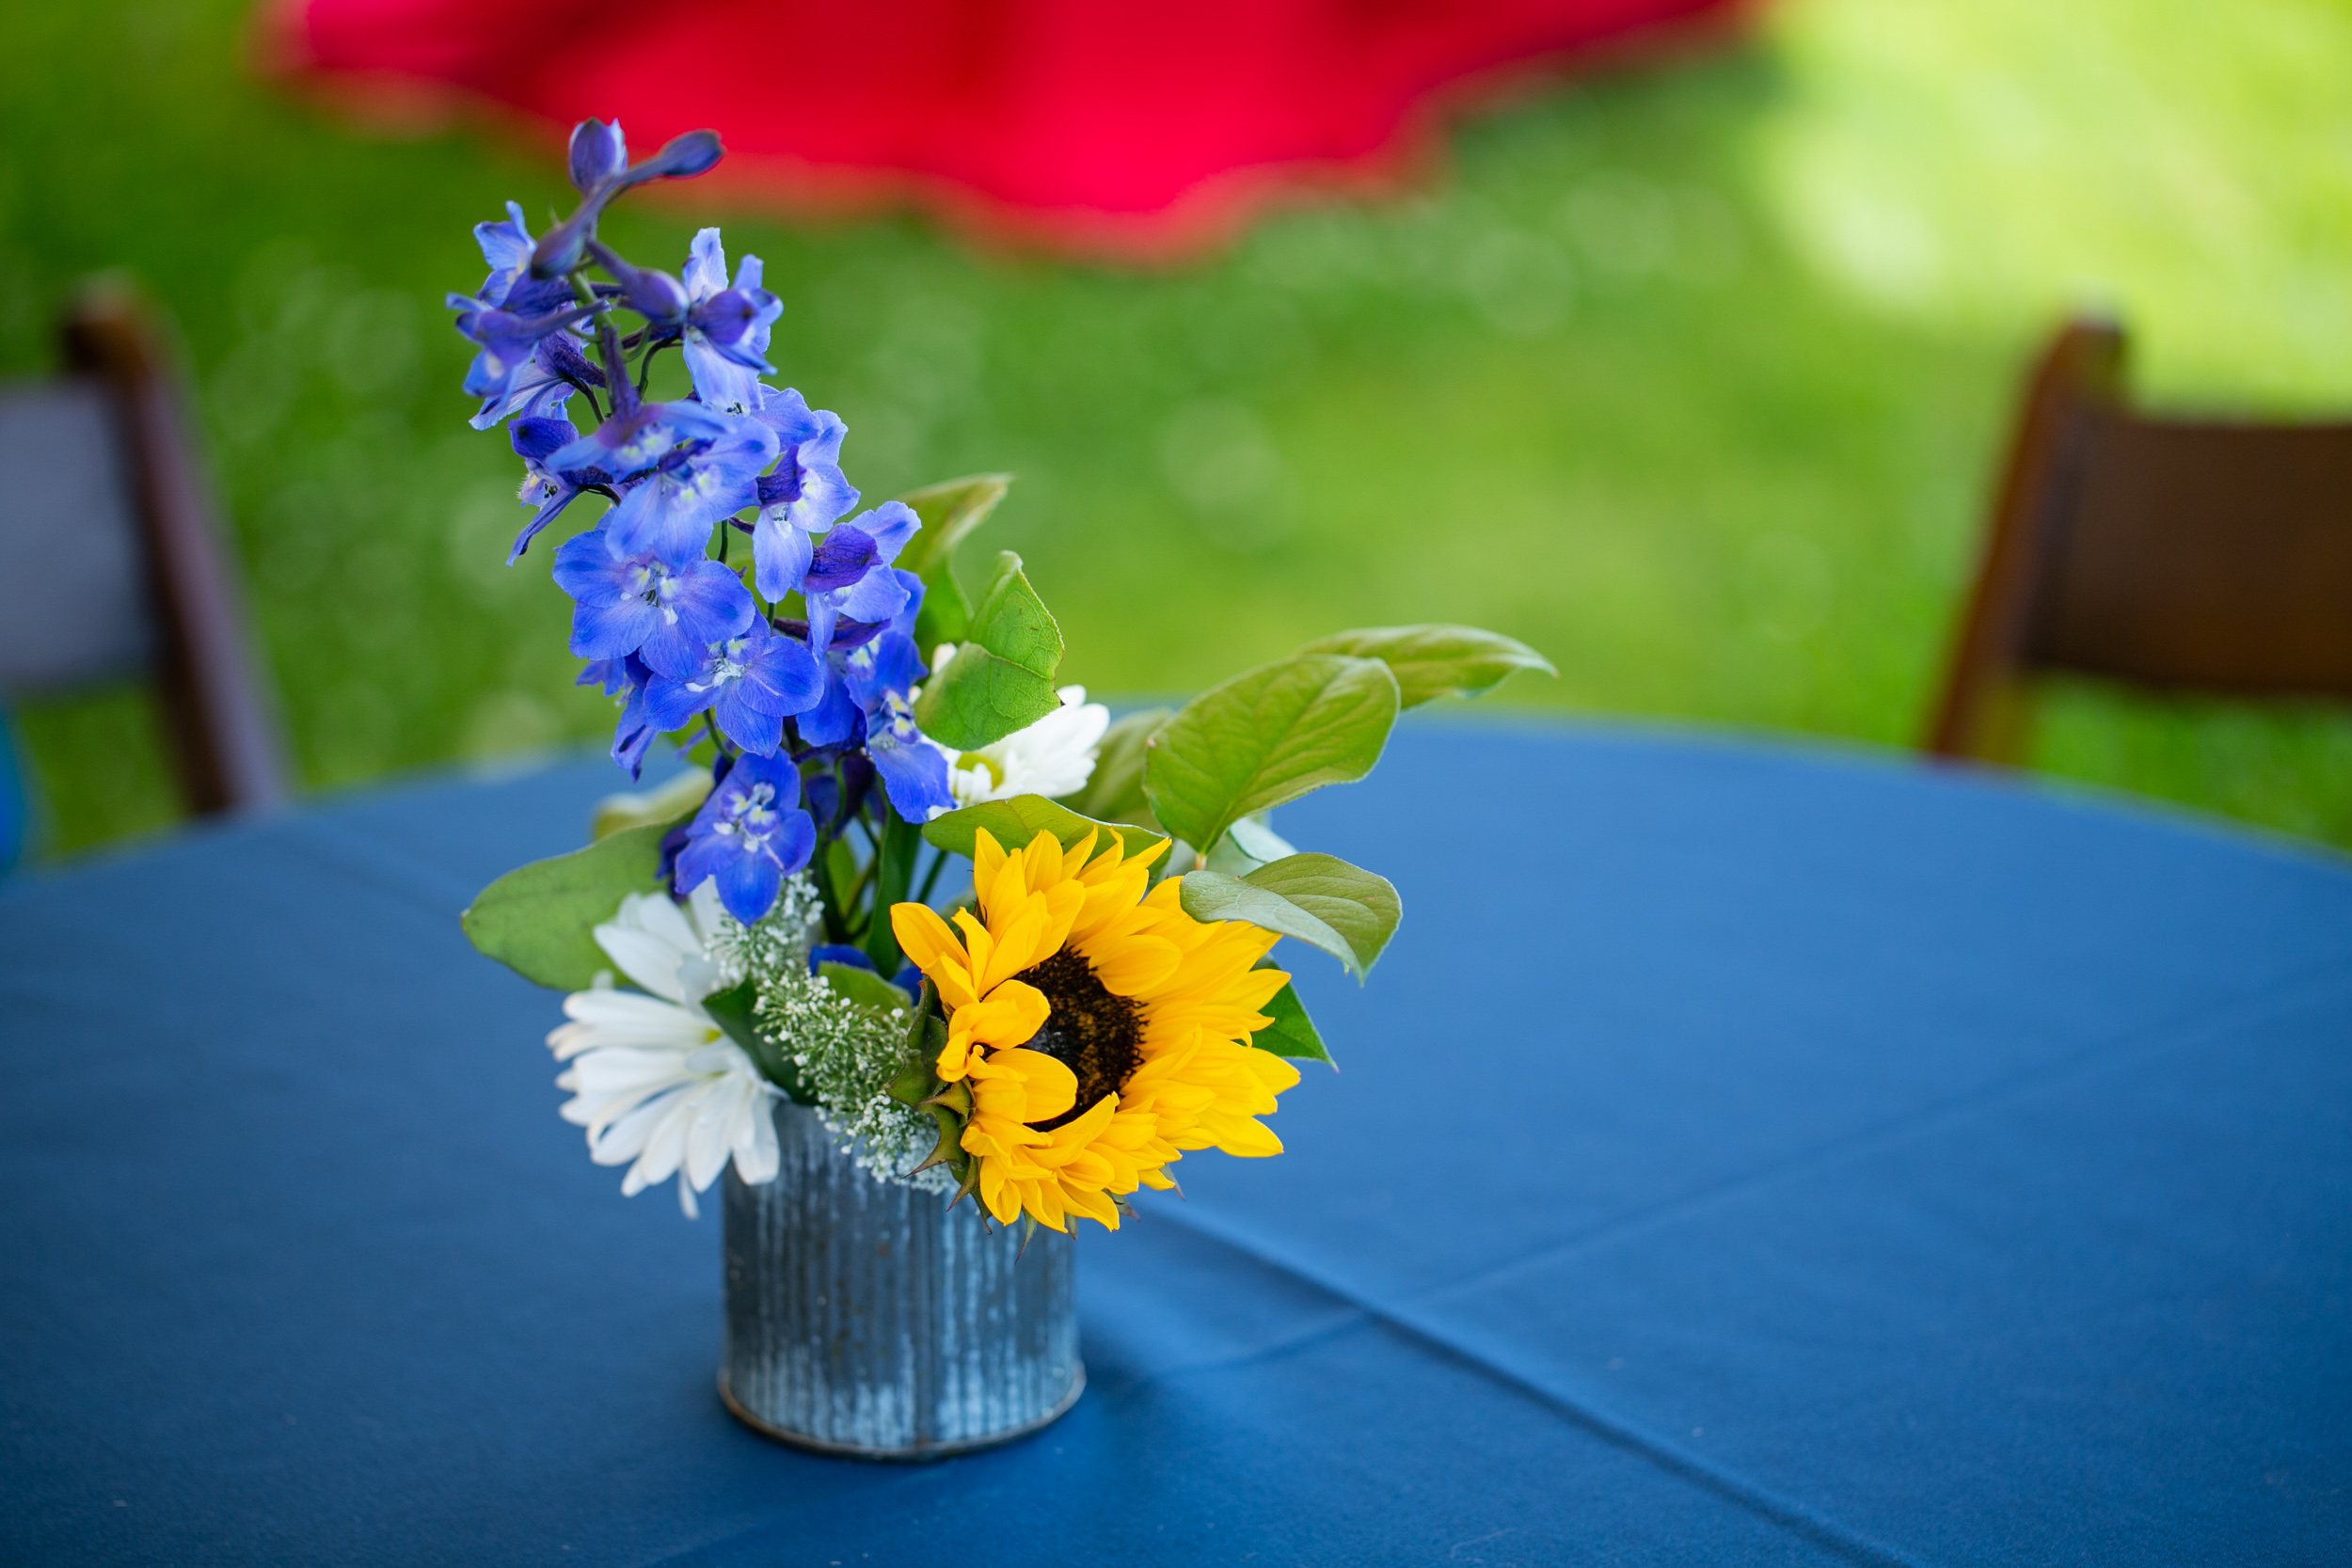 Veterans_Count_North_Hampton_Seacoast_Corporate_Production_Pizzuti_Runnymede_Farm_Malloy_Events_sunflower_floral_arrangement